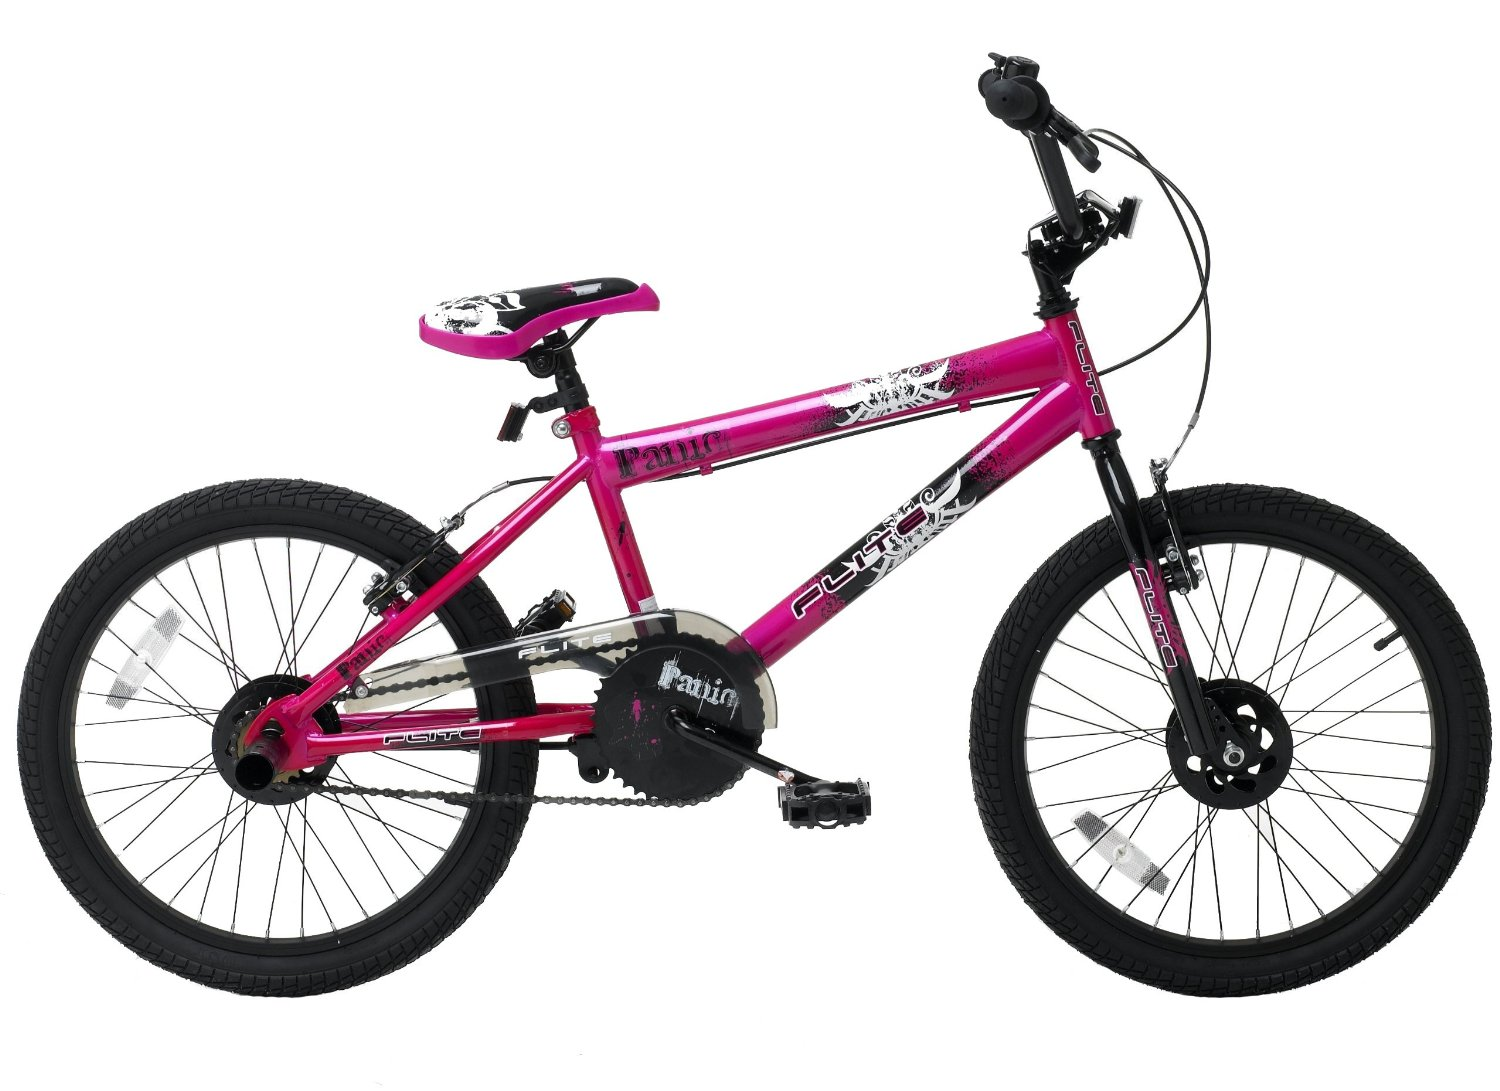 Toy Bikes For Girls